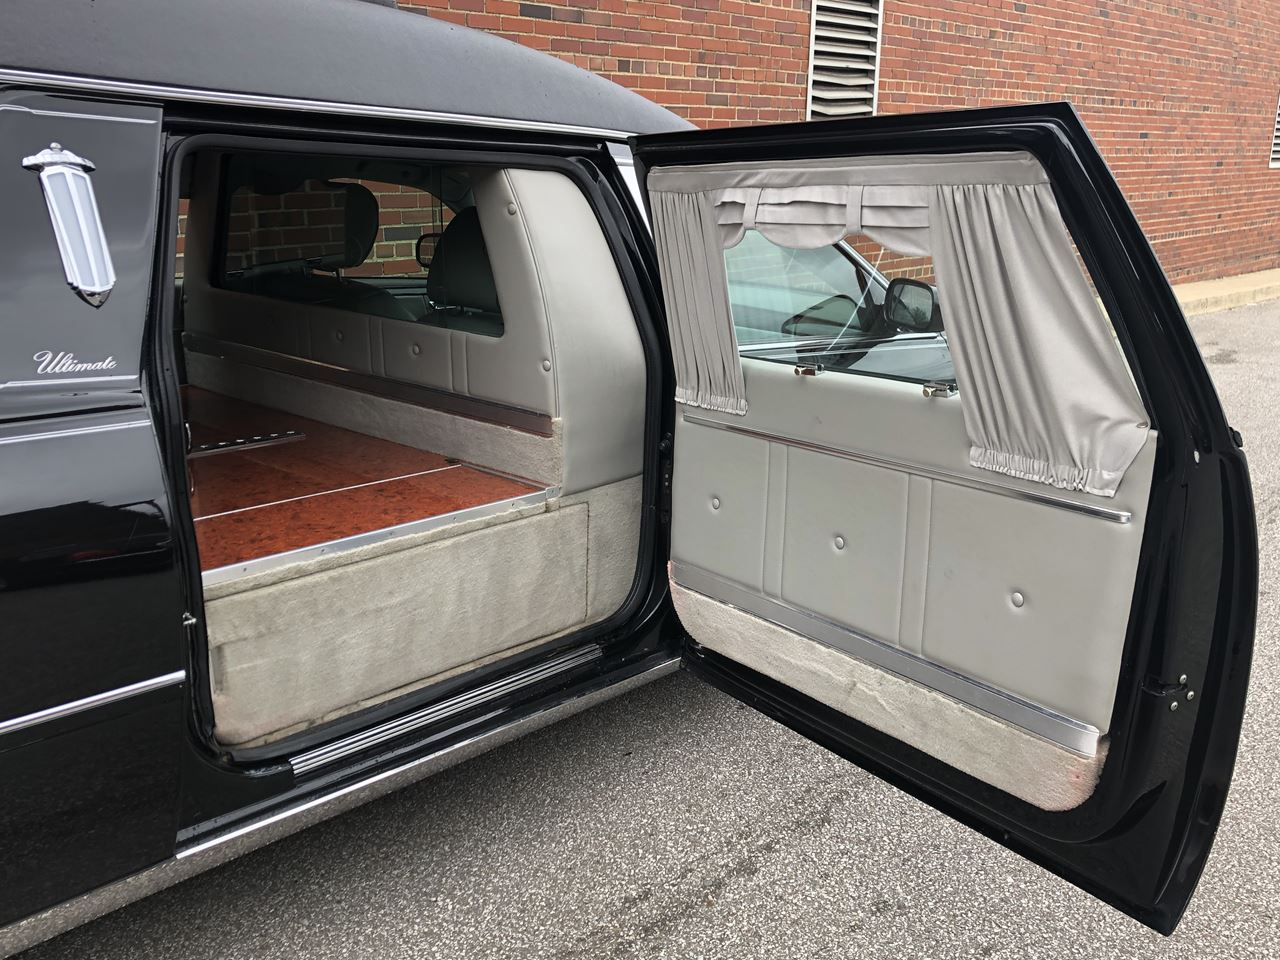 2011 Cadillac Eagle Kingsley Hearse 18 14